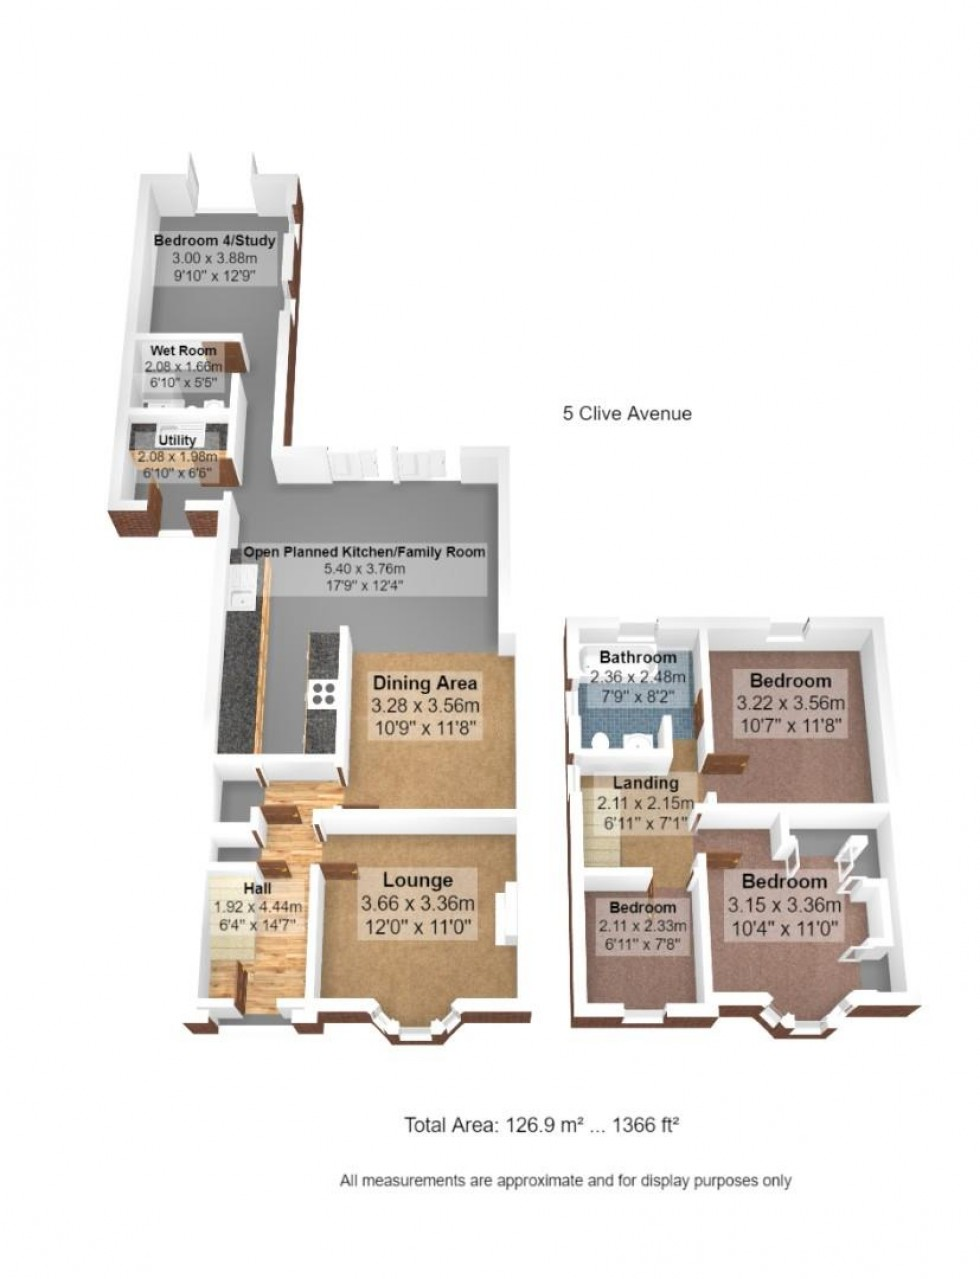 Floorplan for Clive Avenue, Lytham St. Annes